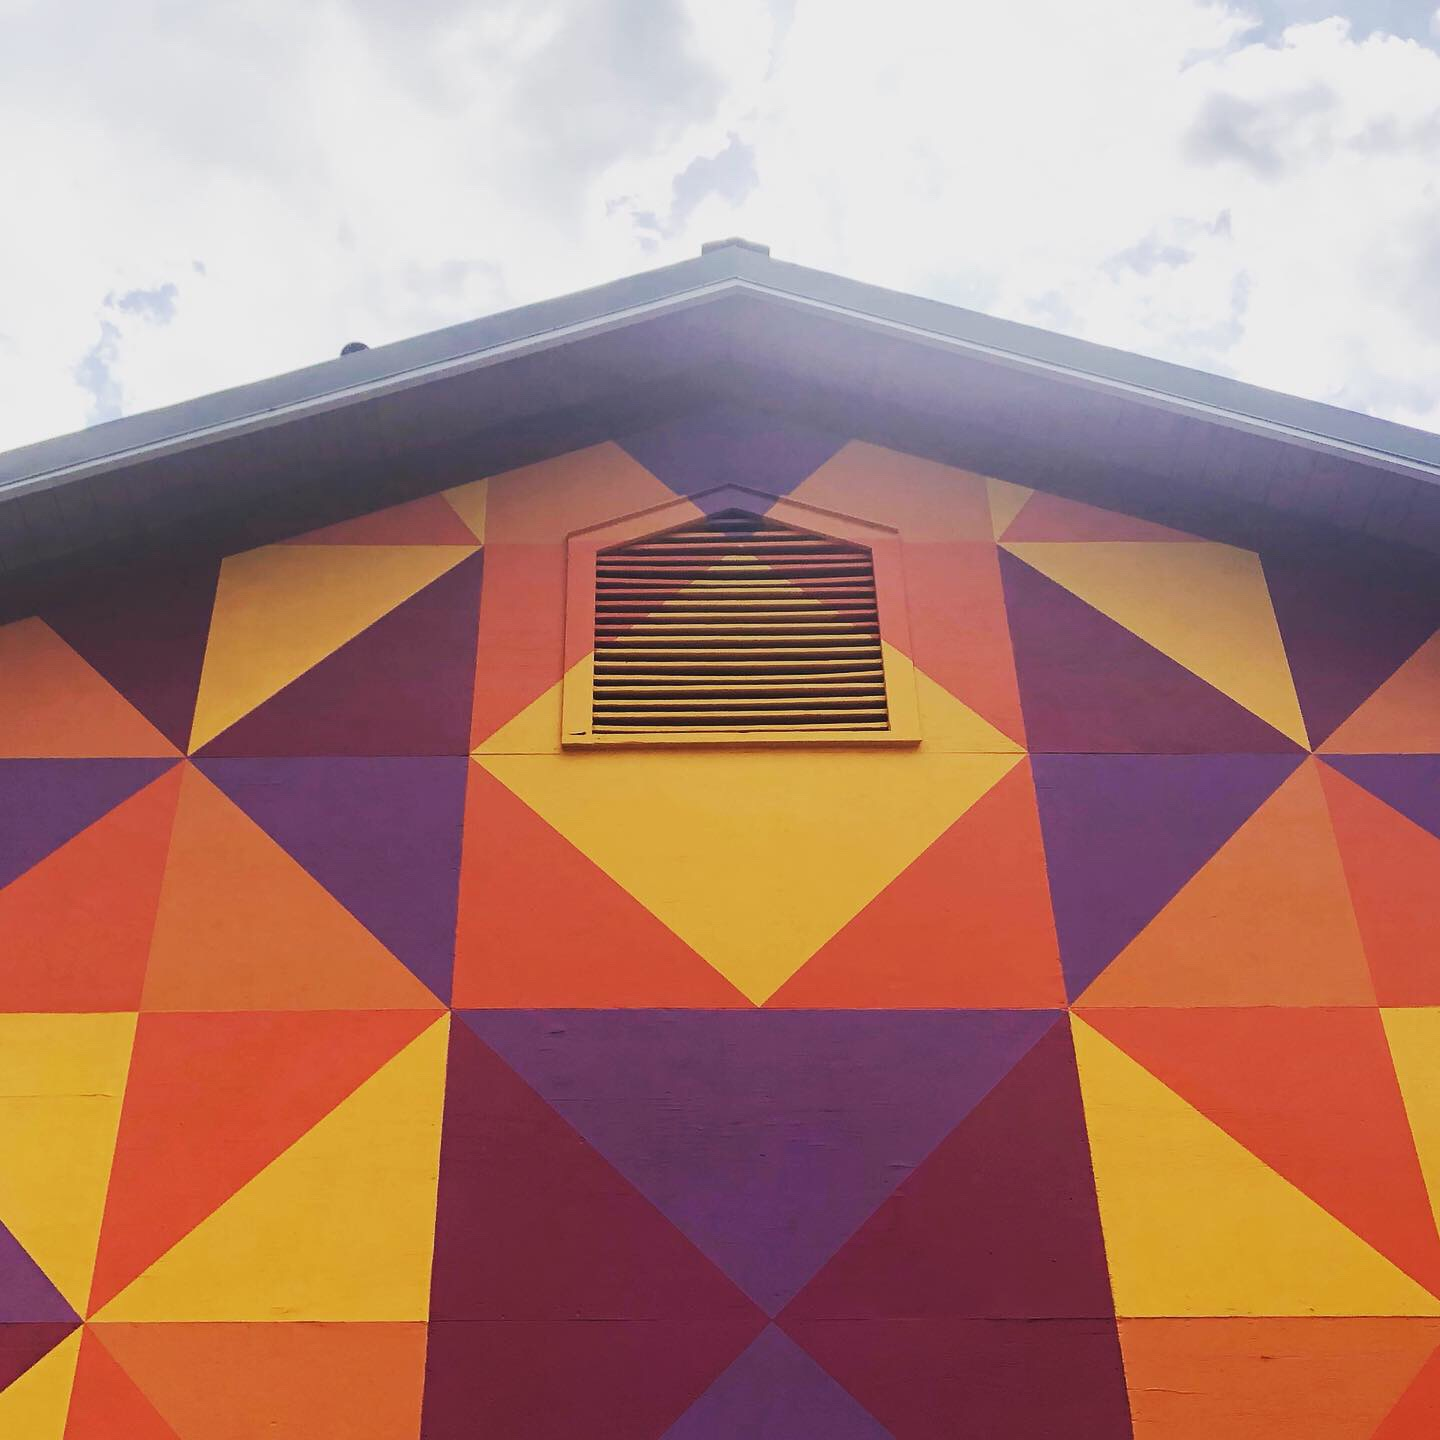 Large barn quilt painting.